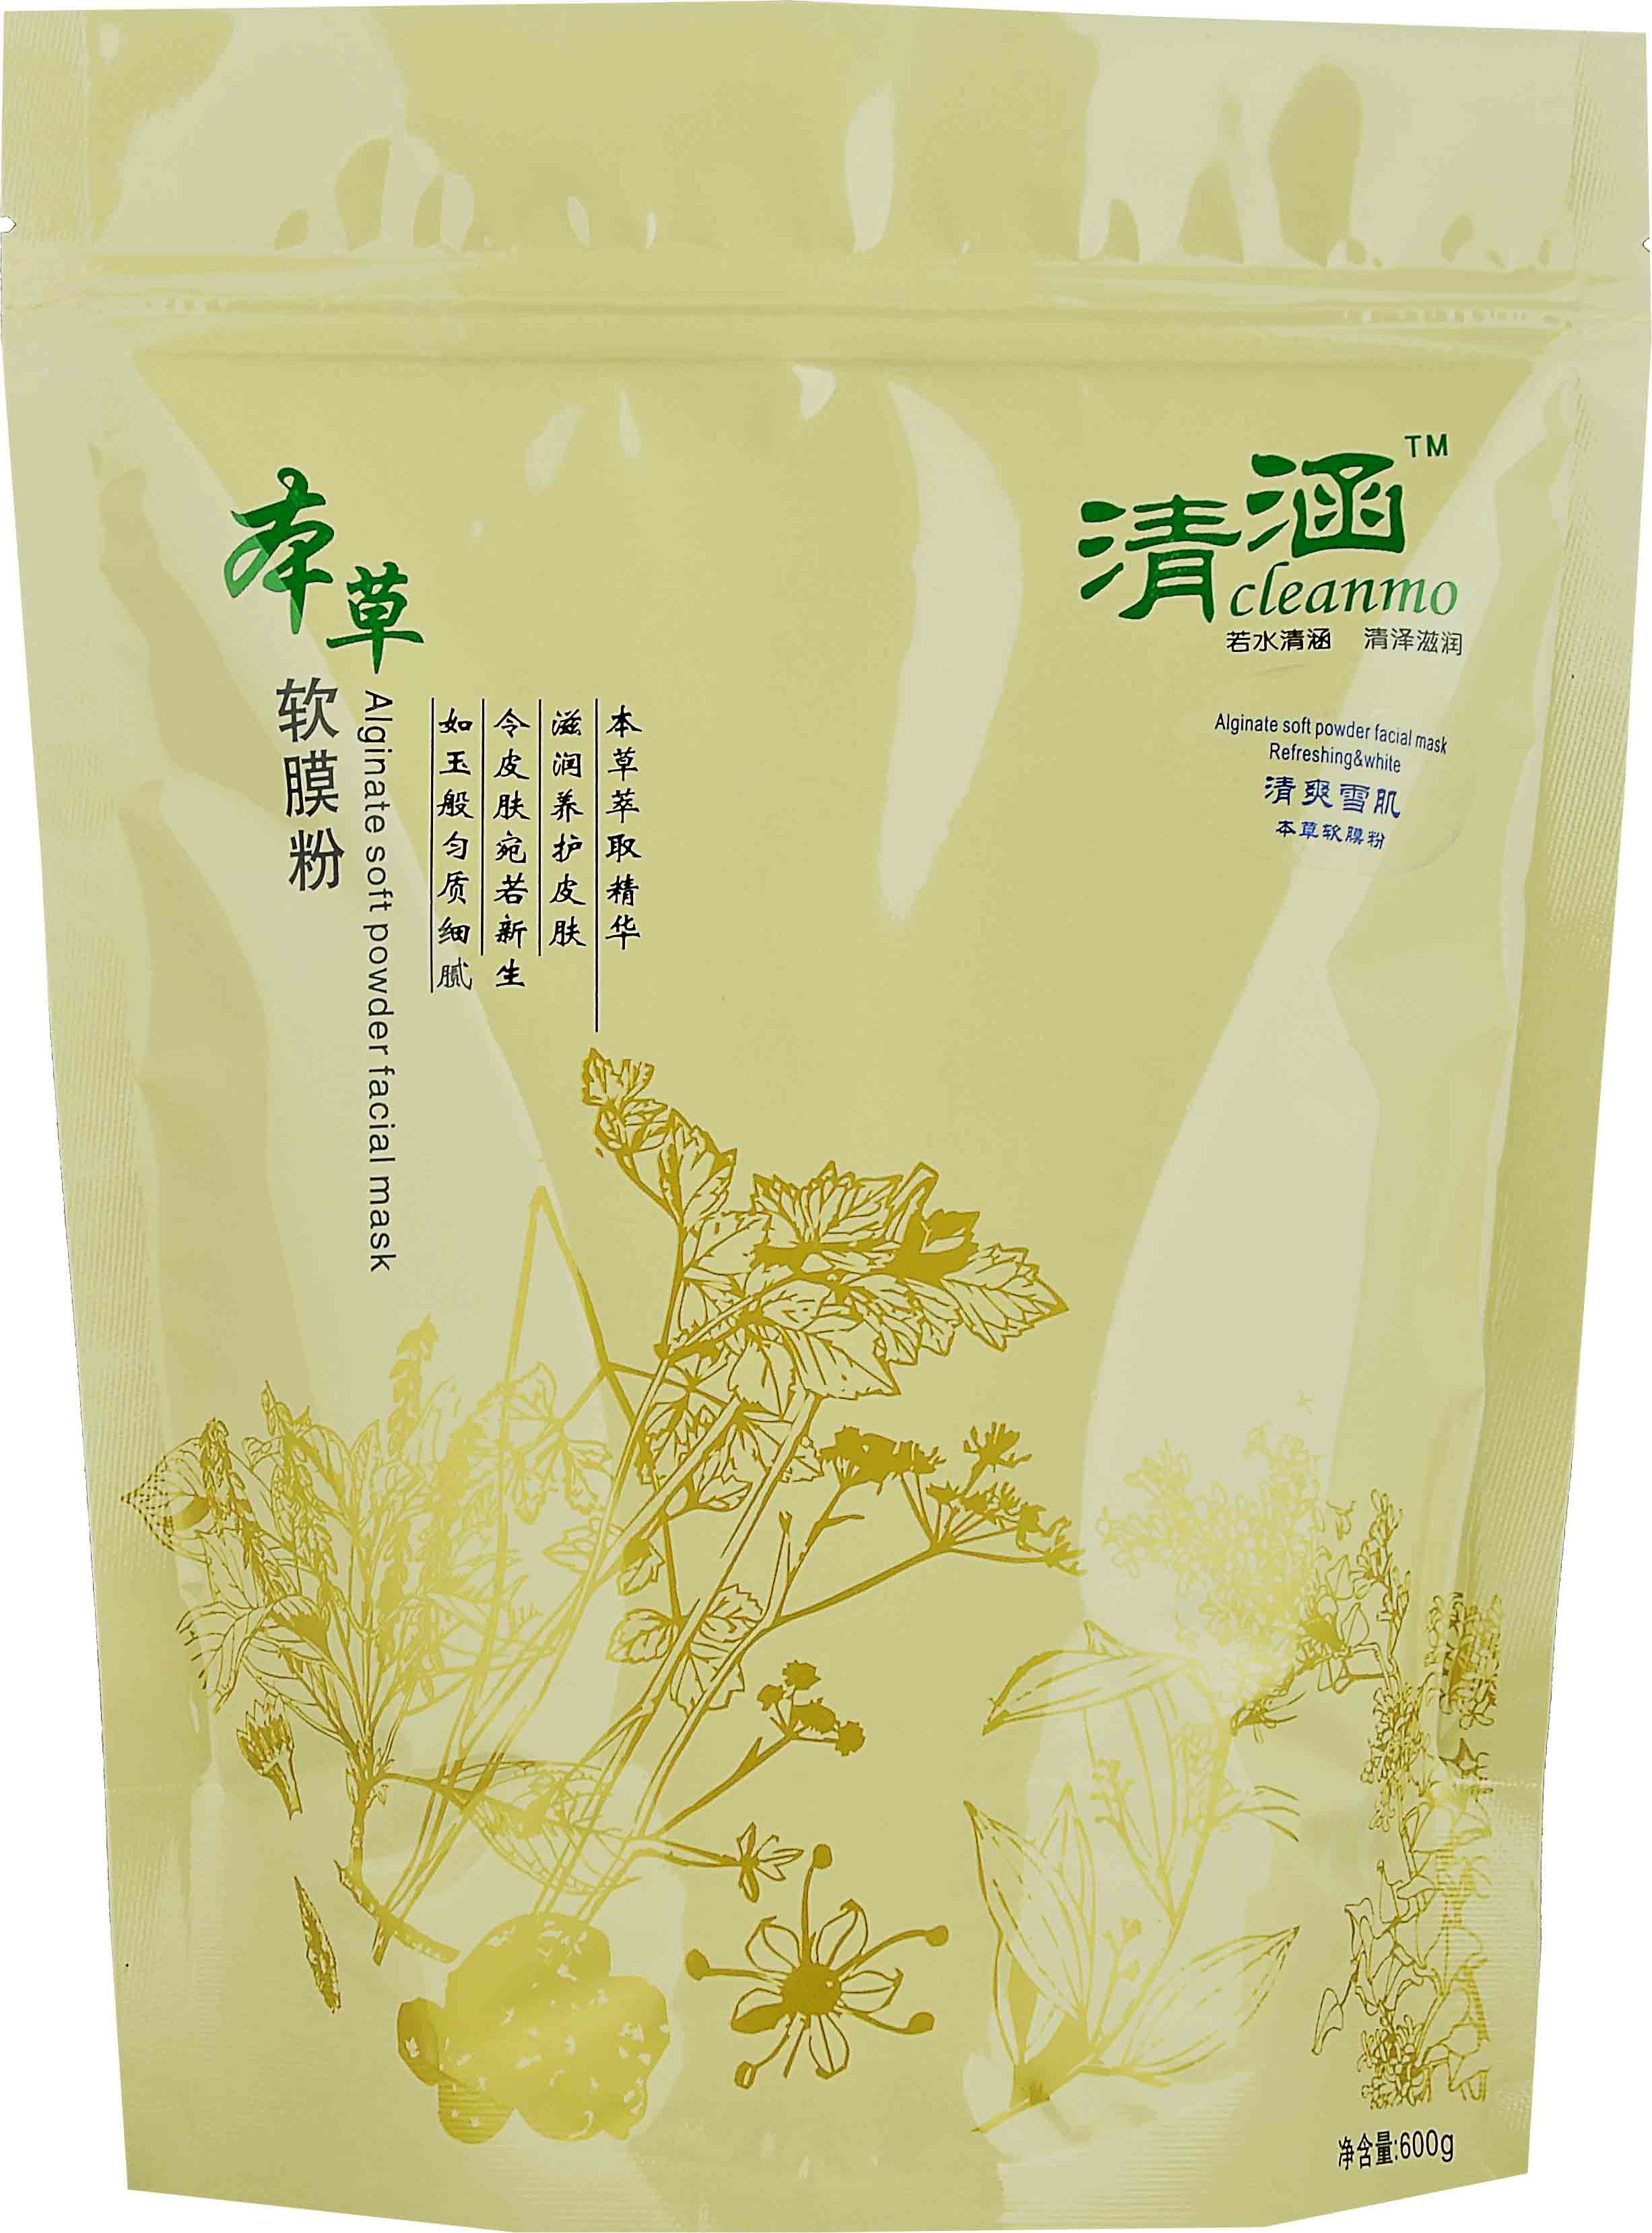 Brightening Nourish Chinese Herb Mask Making Skin White and Delicate